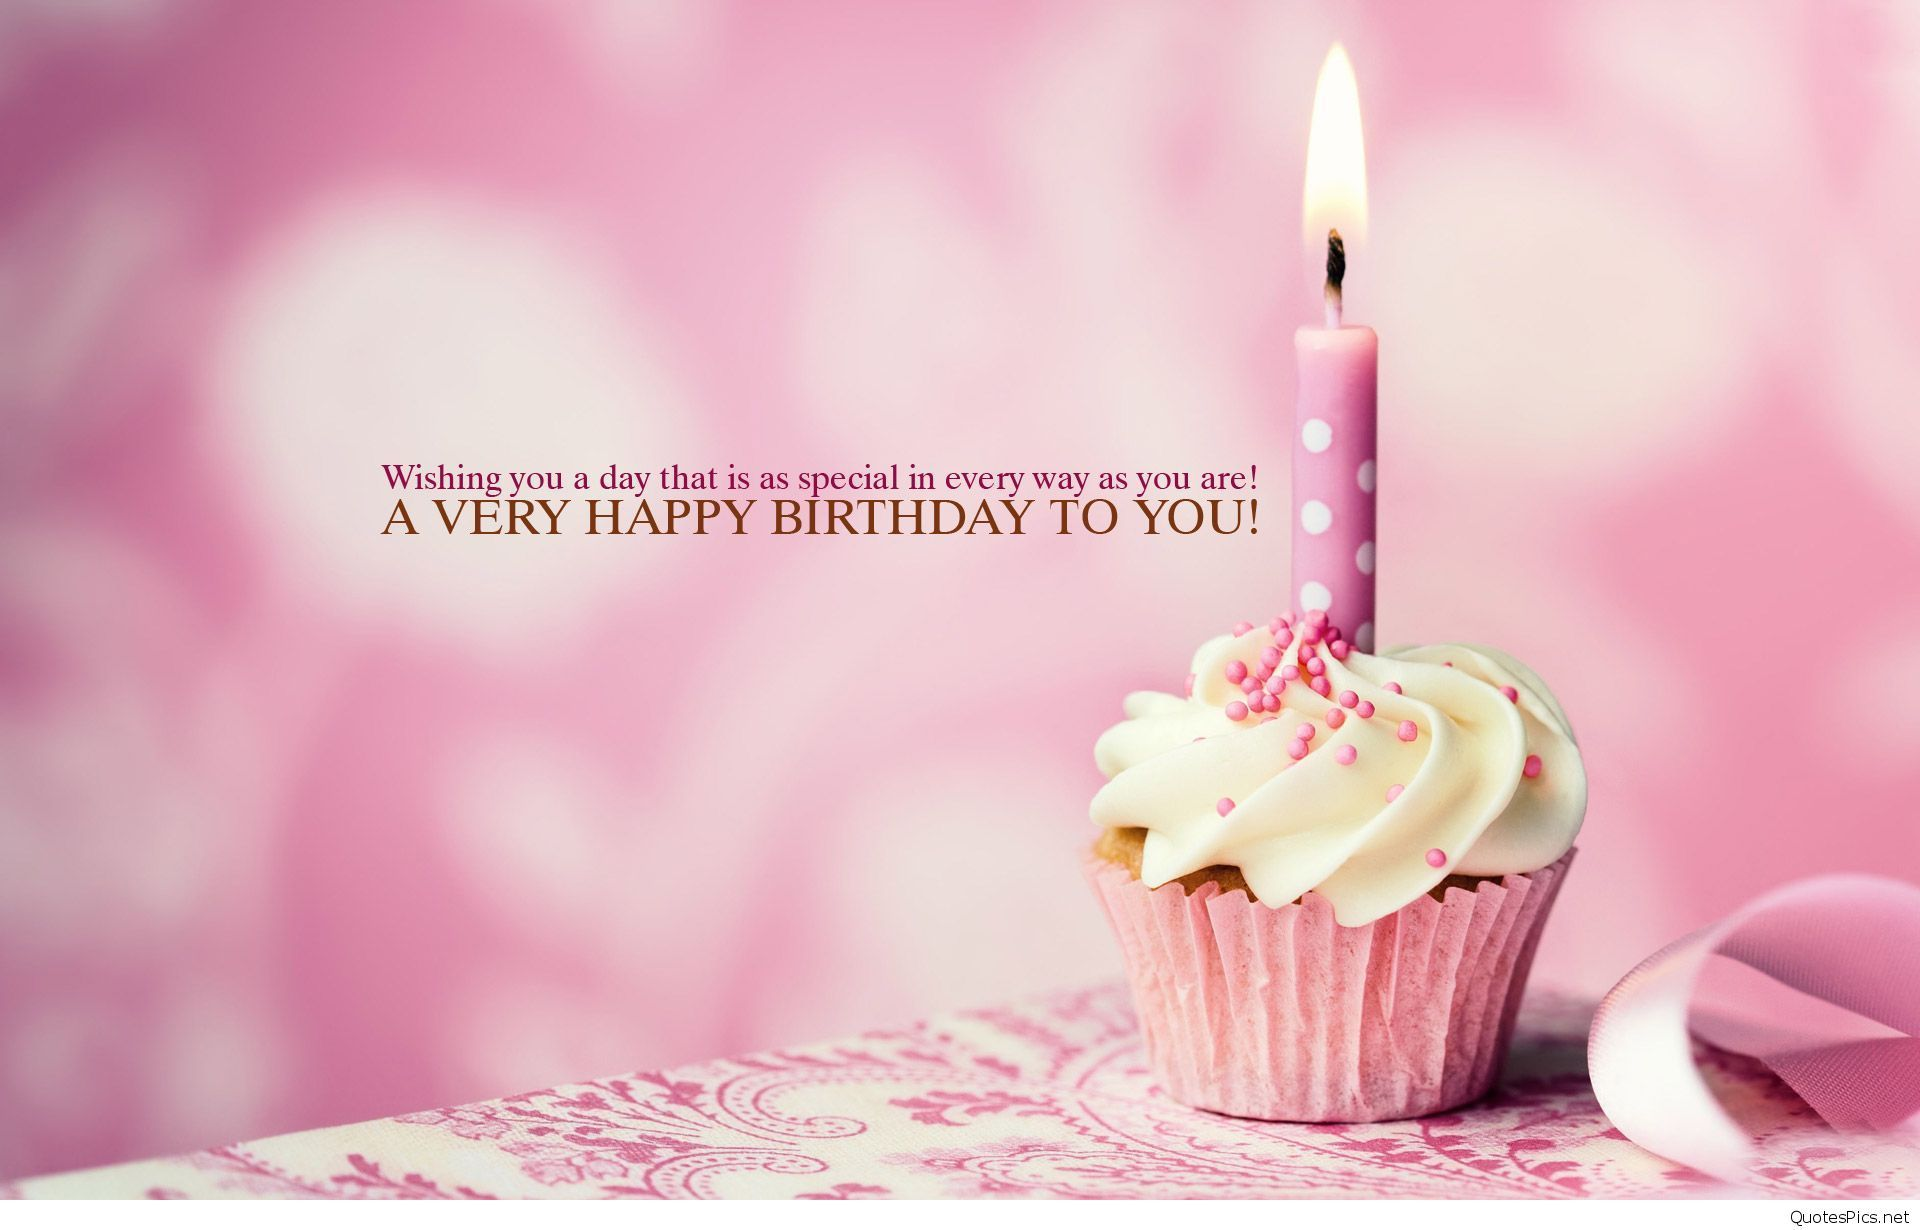 Happy Birthday Quotes Hd Images ~ Happy anniversary birthdays wallpapers cakes and wishes hd